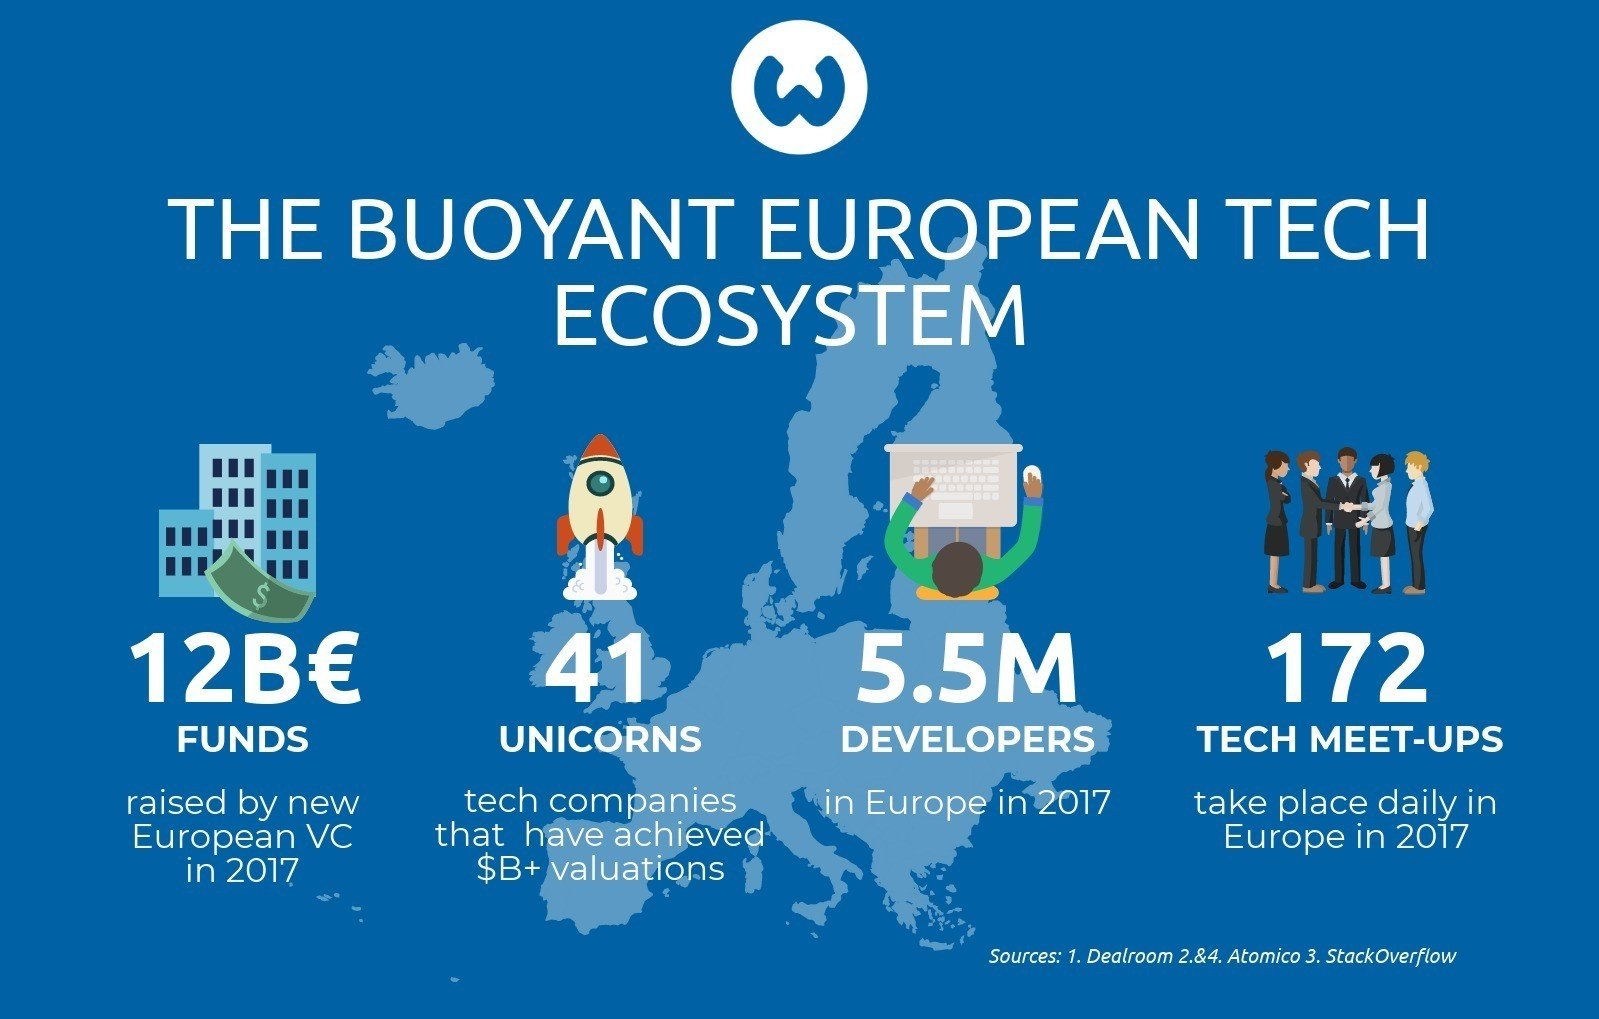 The buoyant European Tech ecosystem